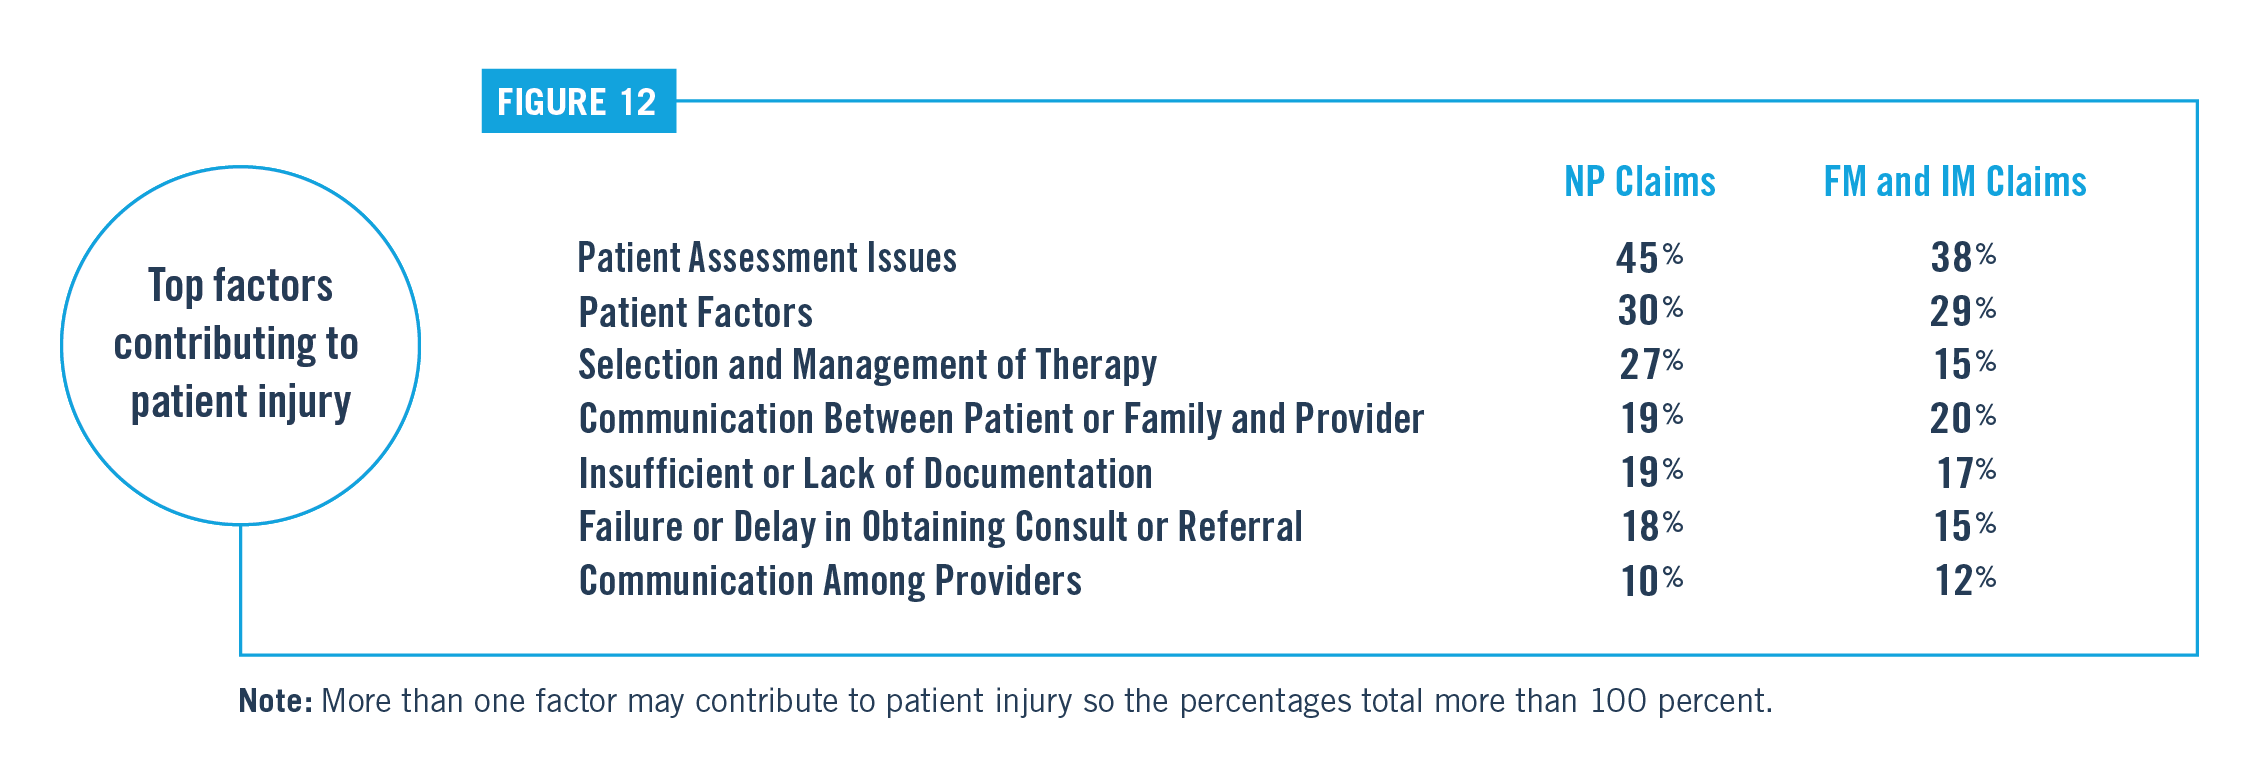 Top Factors Contributing to Patient Injury